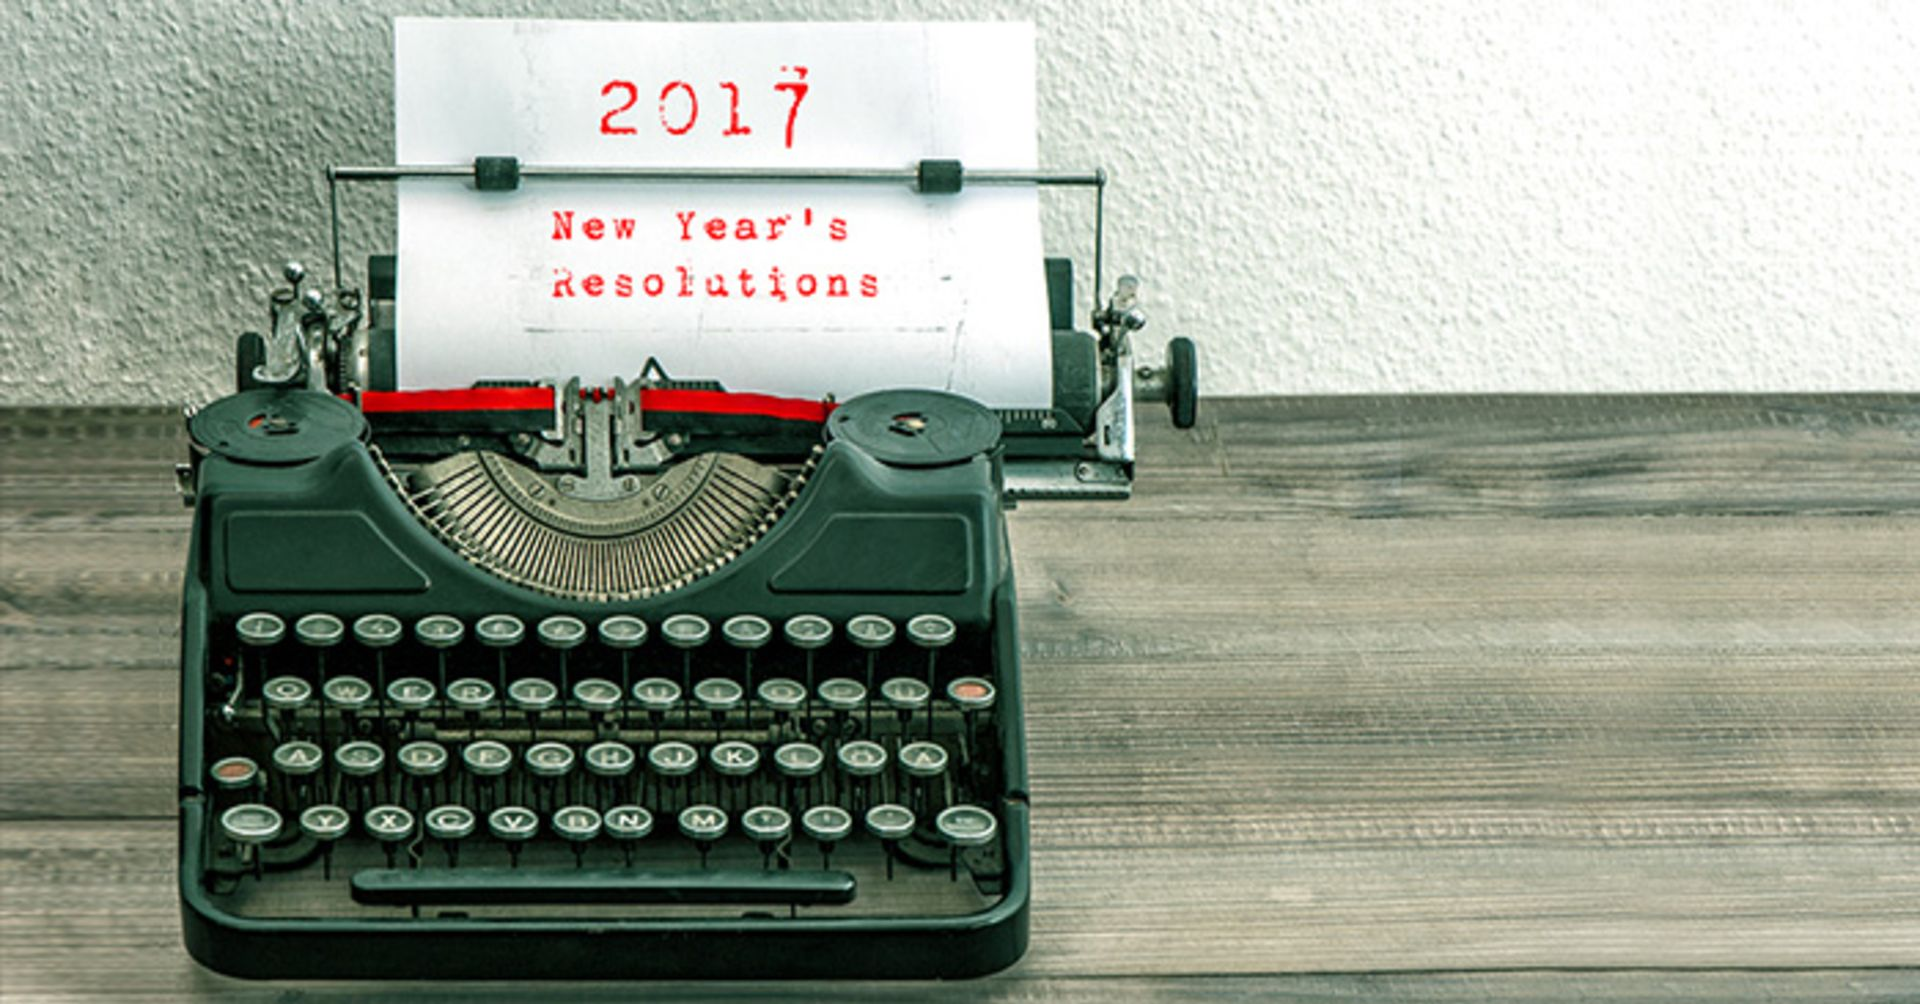 5 New Year's Resolutions Every Homeowner Should Make for 2017